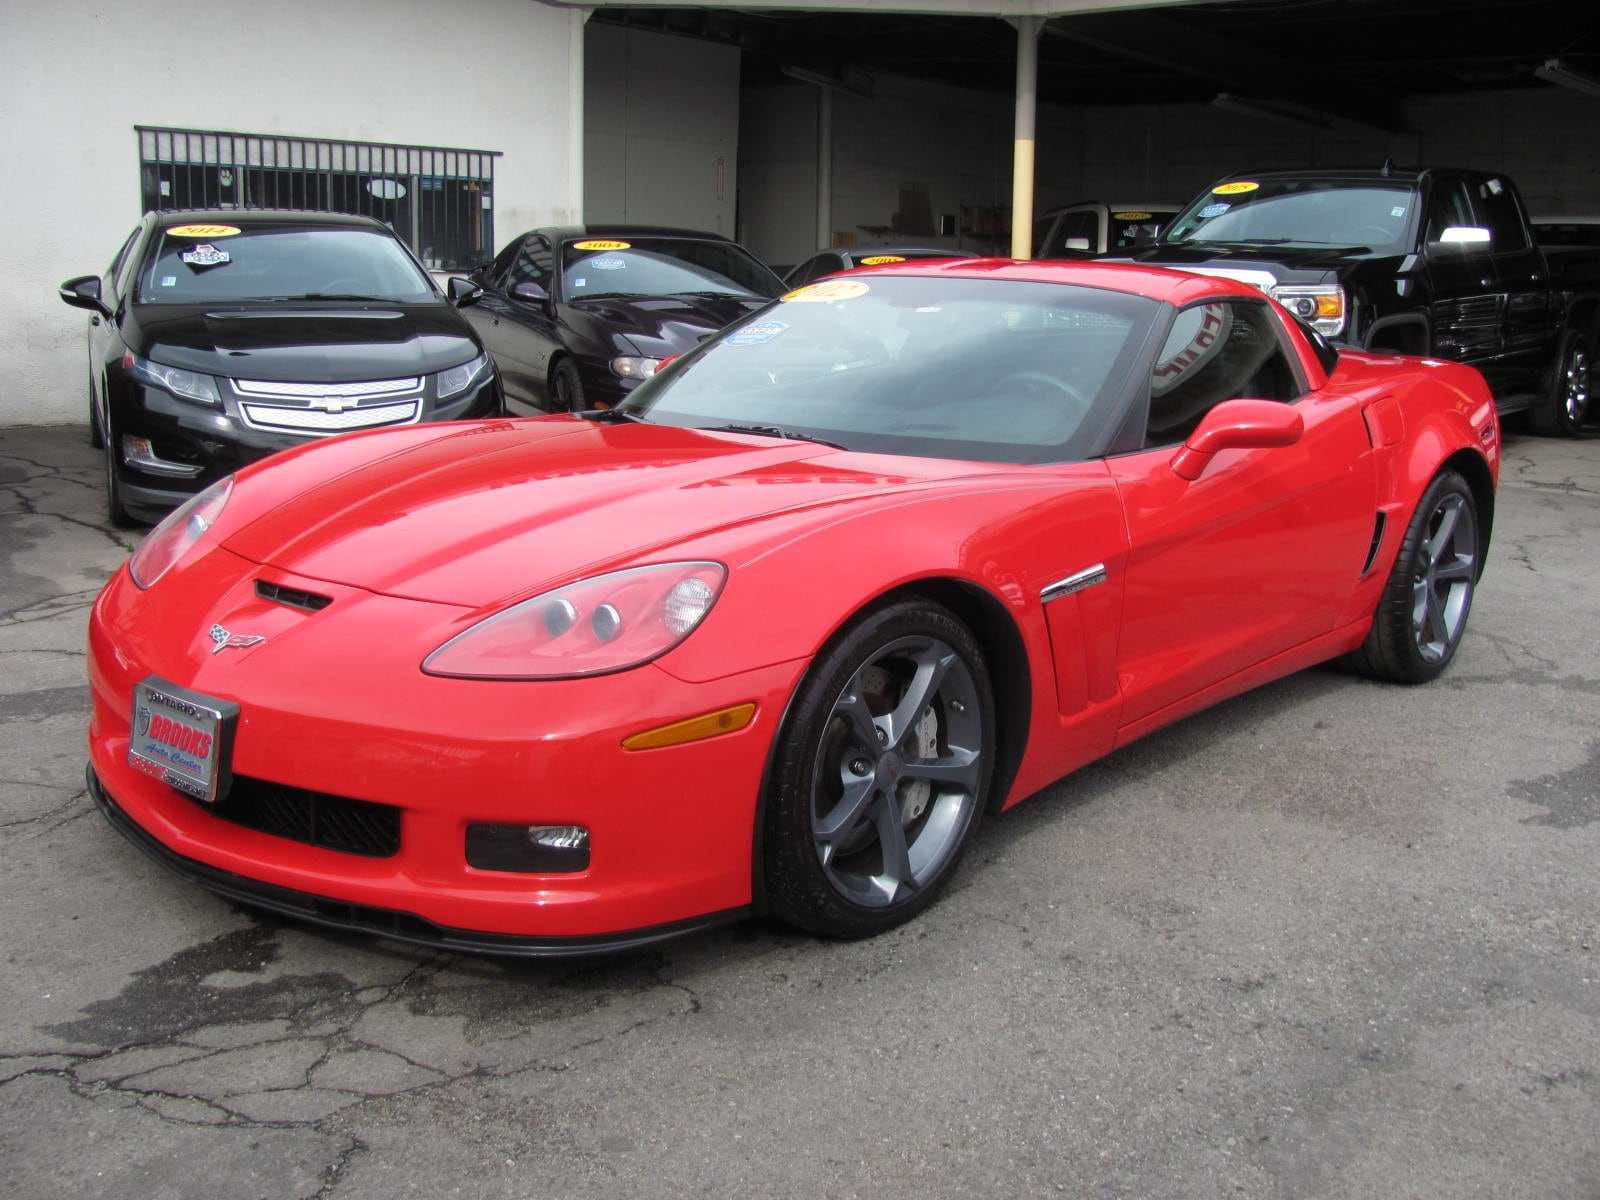 2012 Chevrolet Corvette Grand Sport Coupe